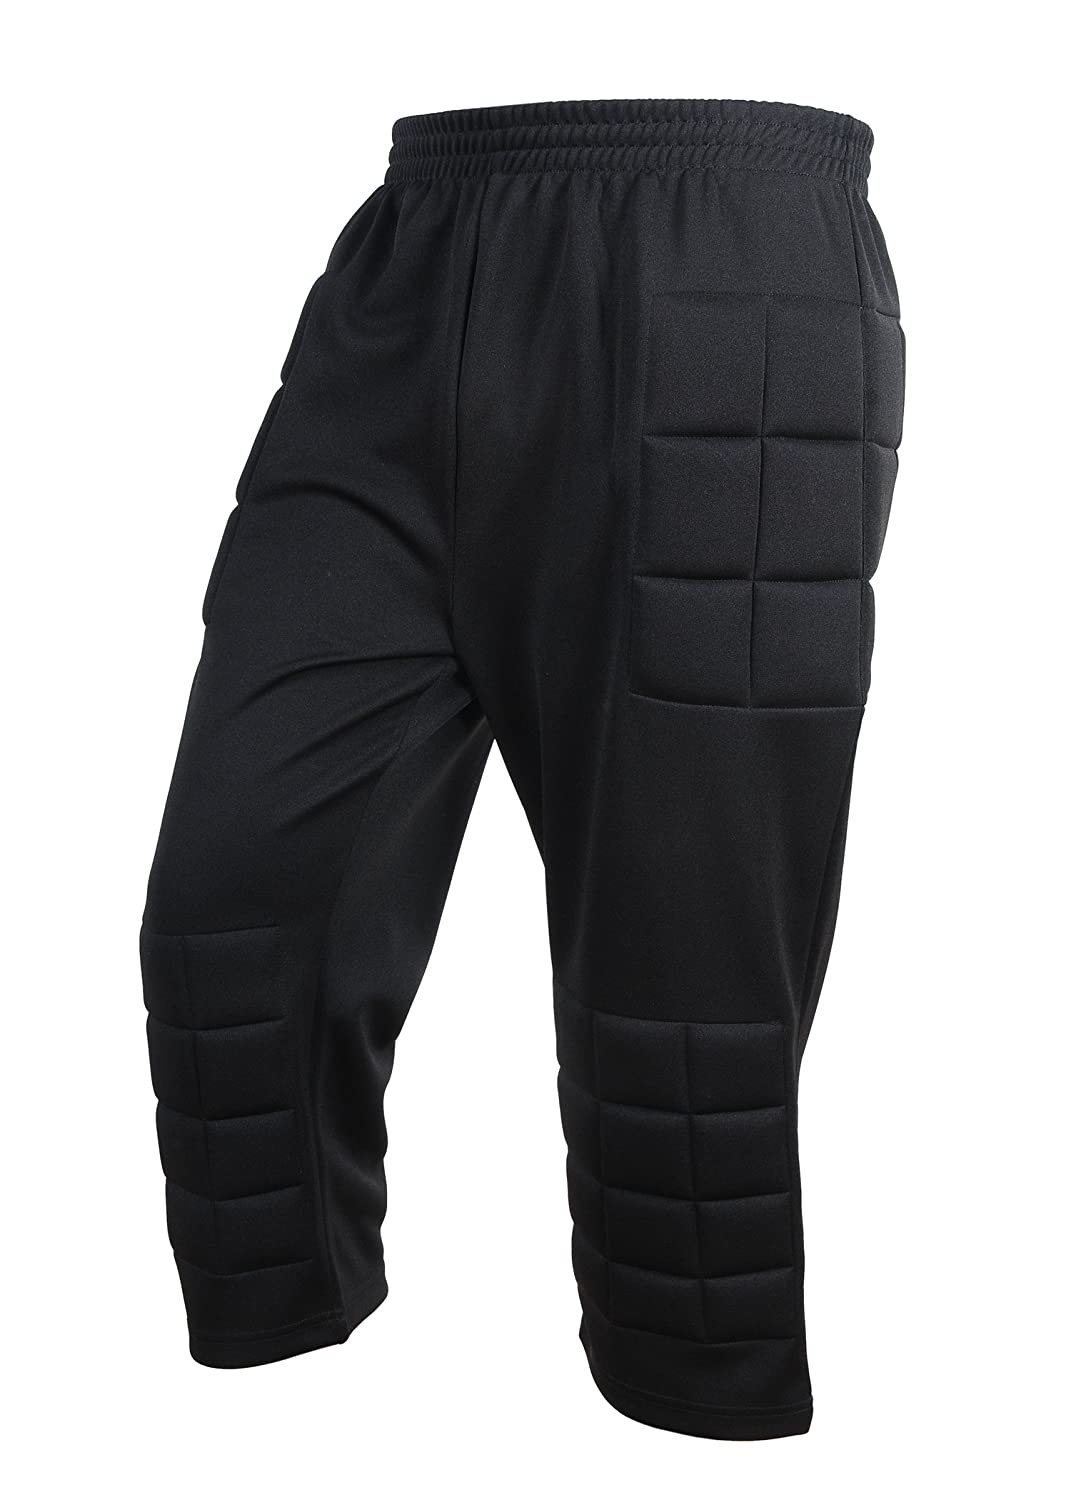 724f4e6db Amazon.com : Soccer Goalie Pants 3/4 and Regular : Sports & Outdoors